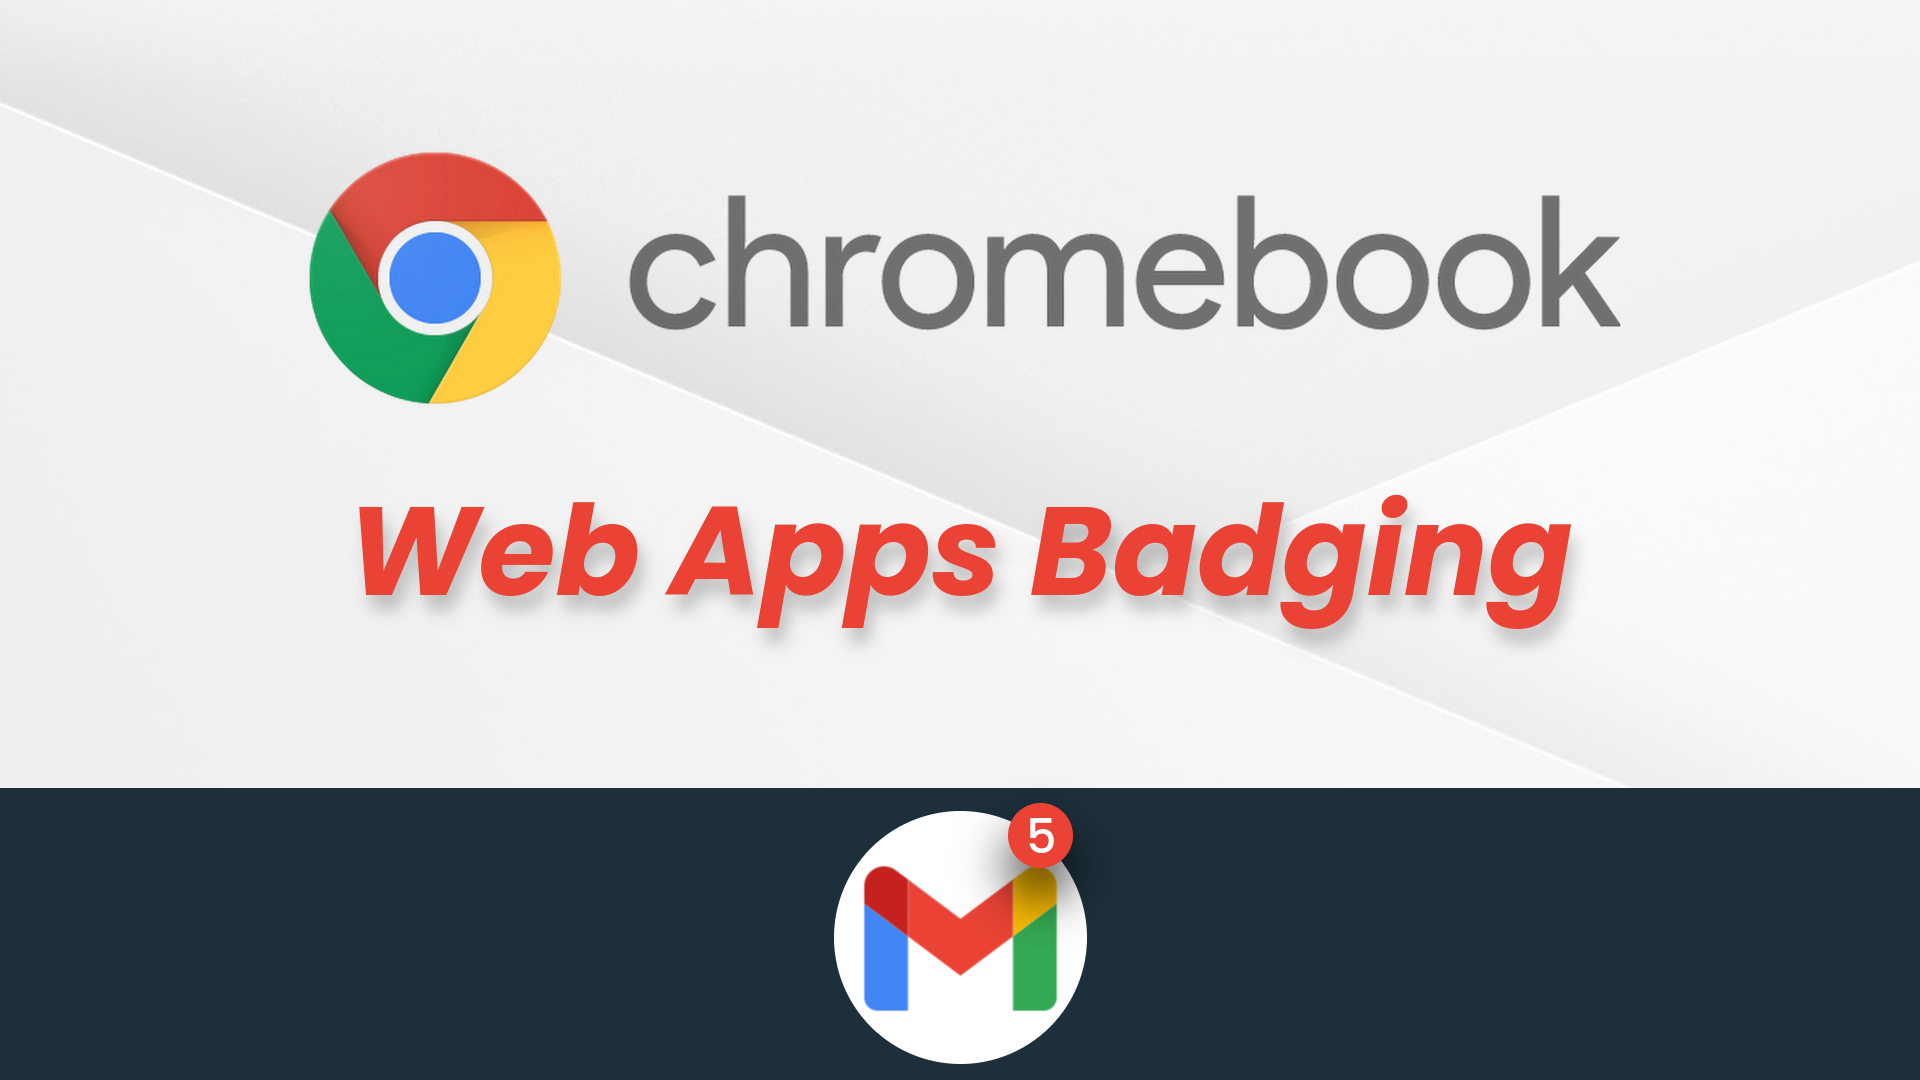 Chrome OS 91 will add notification badges for web apps